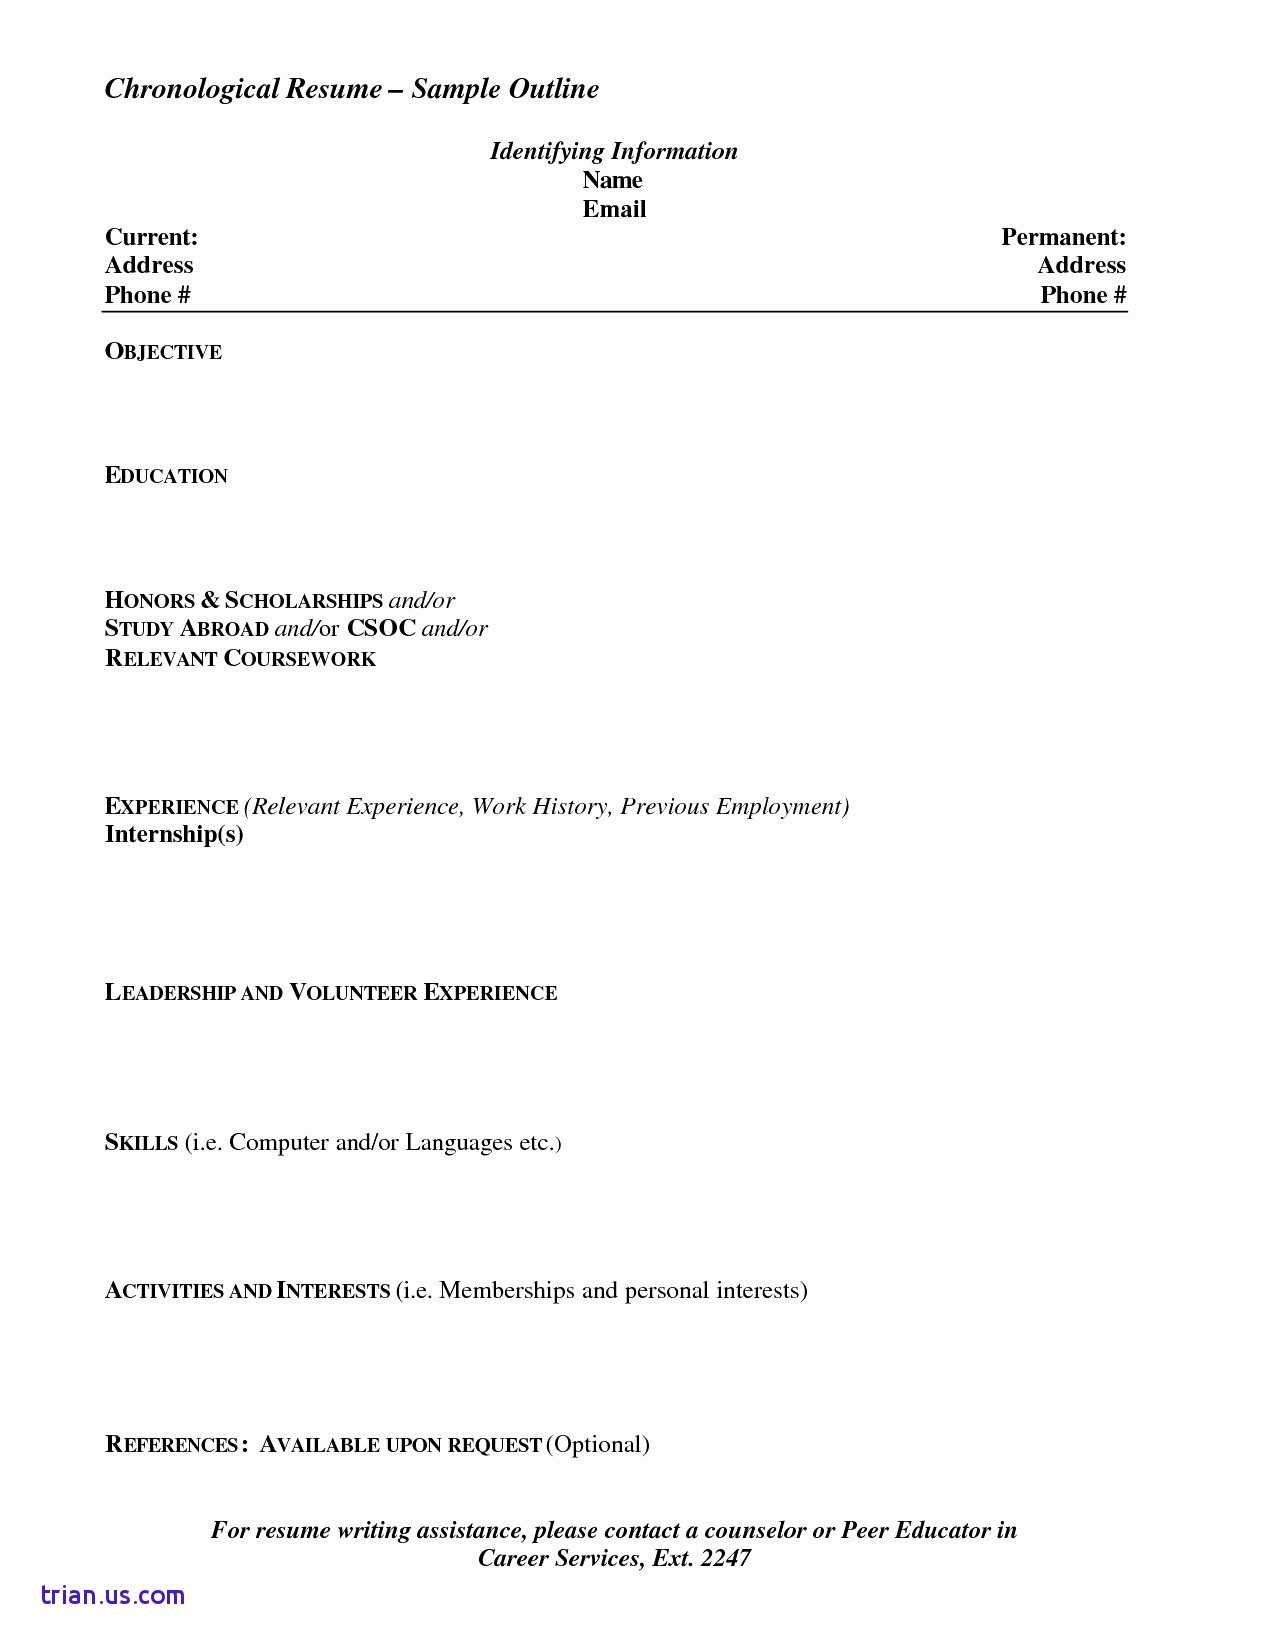 Writing A Good Resume - Perfect Resume Cover Letter Awesome Resume Writing Tips Best Resume